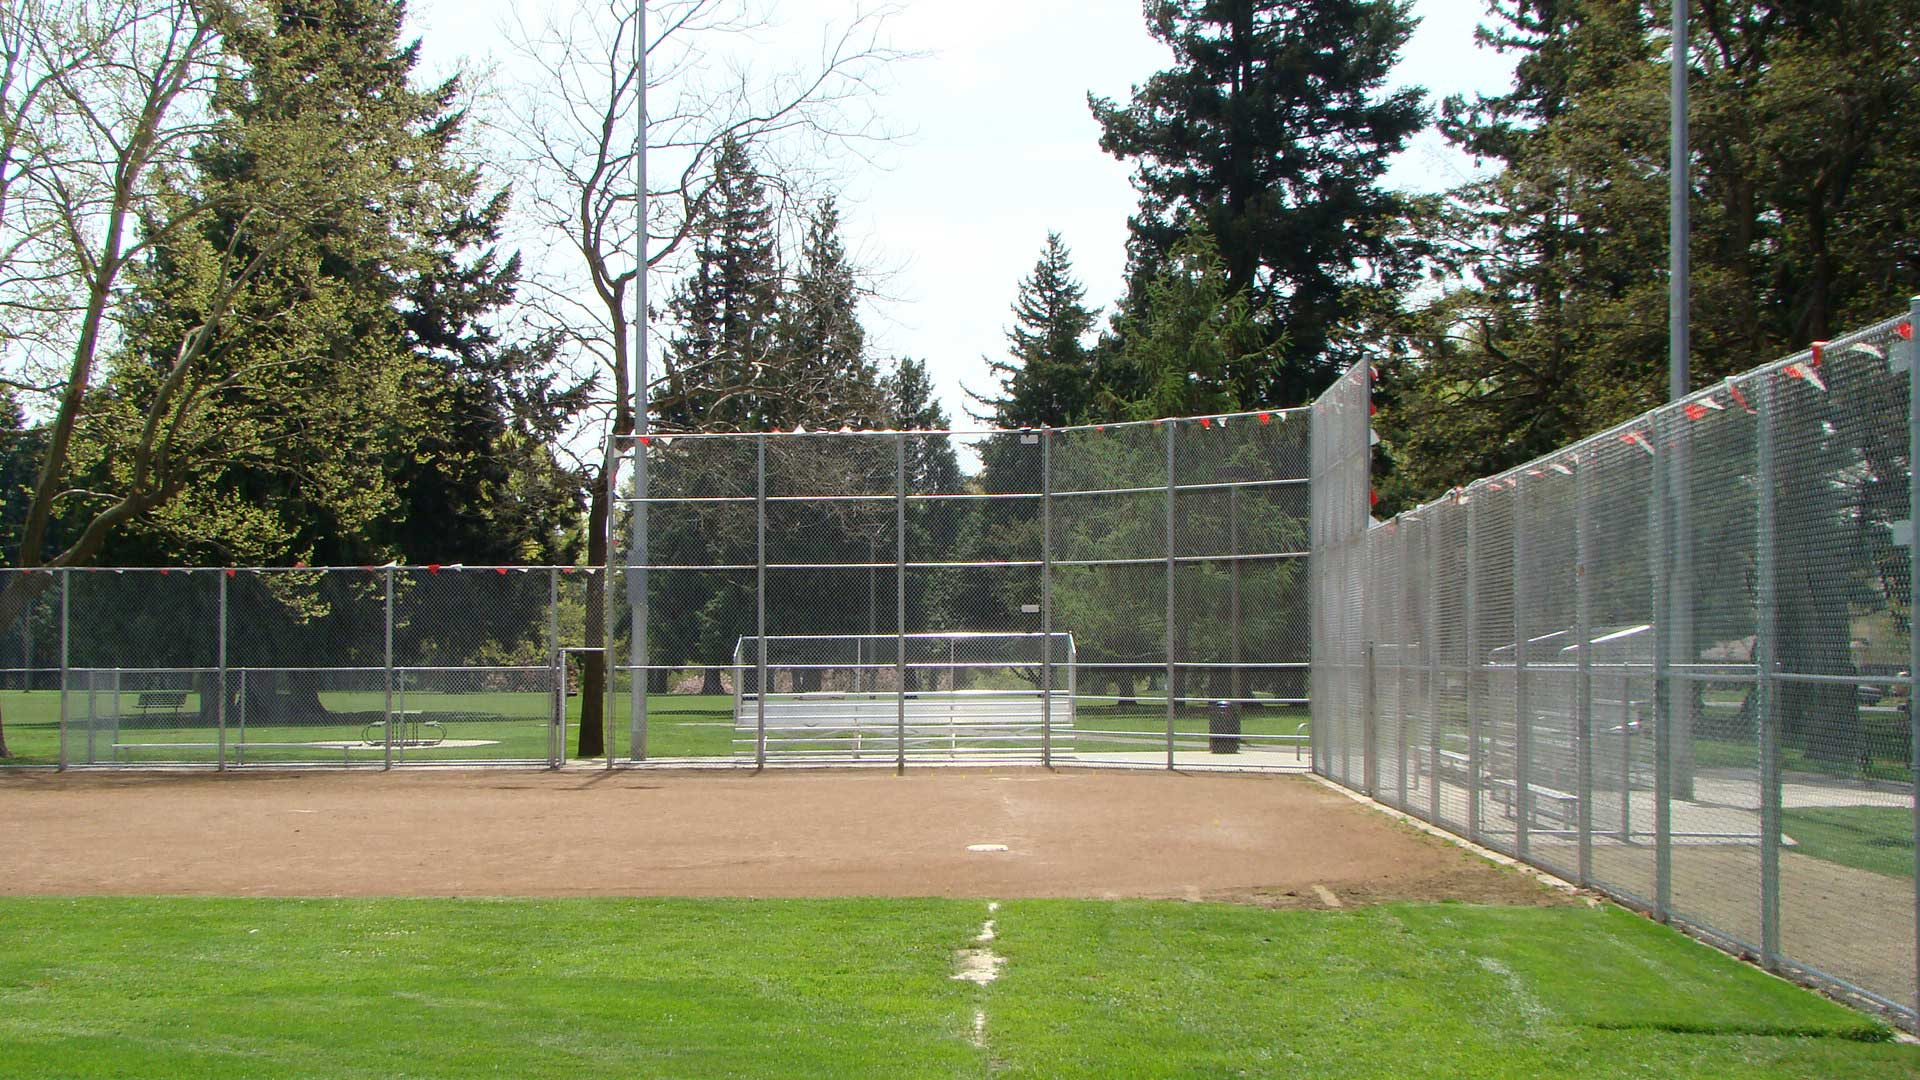 Lents Park Baseball Fields Fitzpatrick Fence And Rail